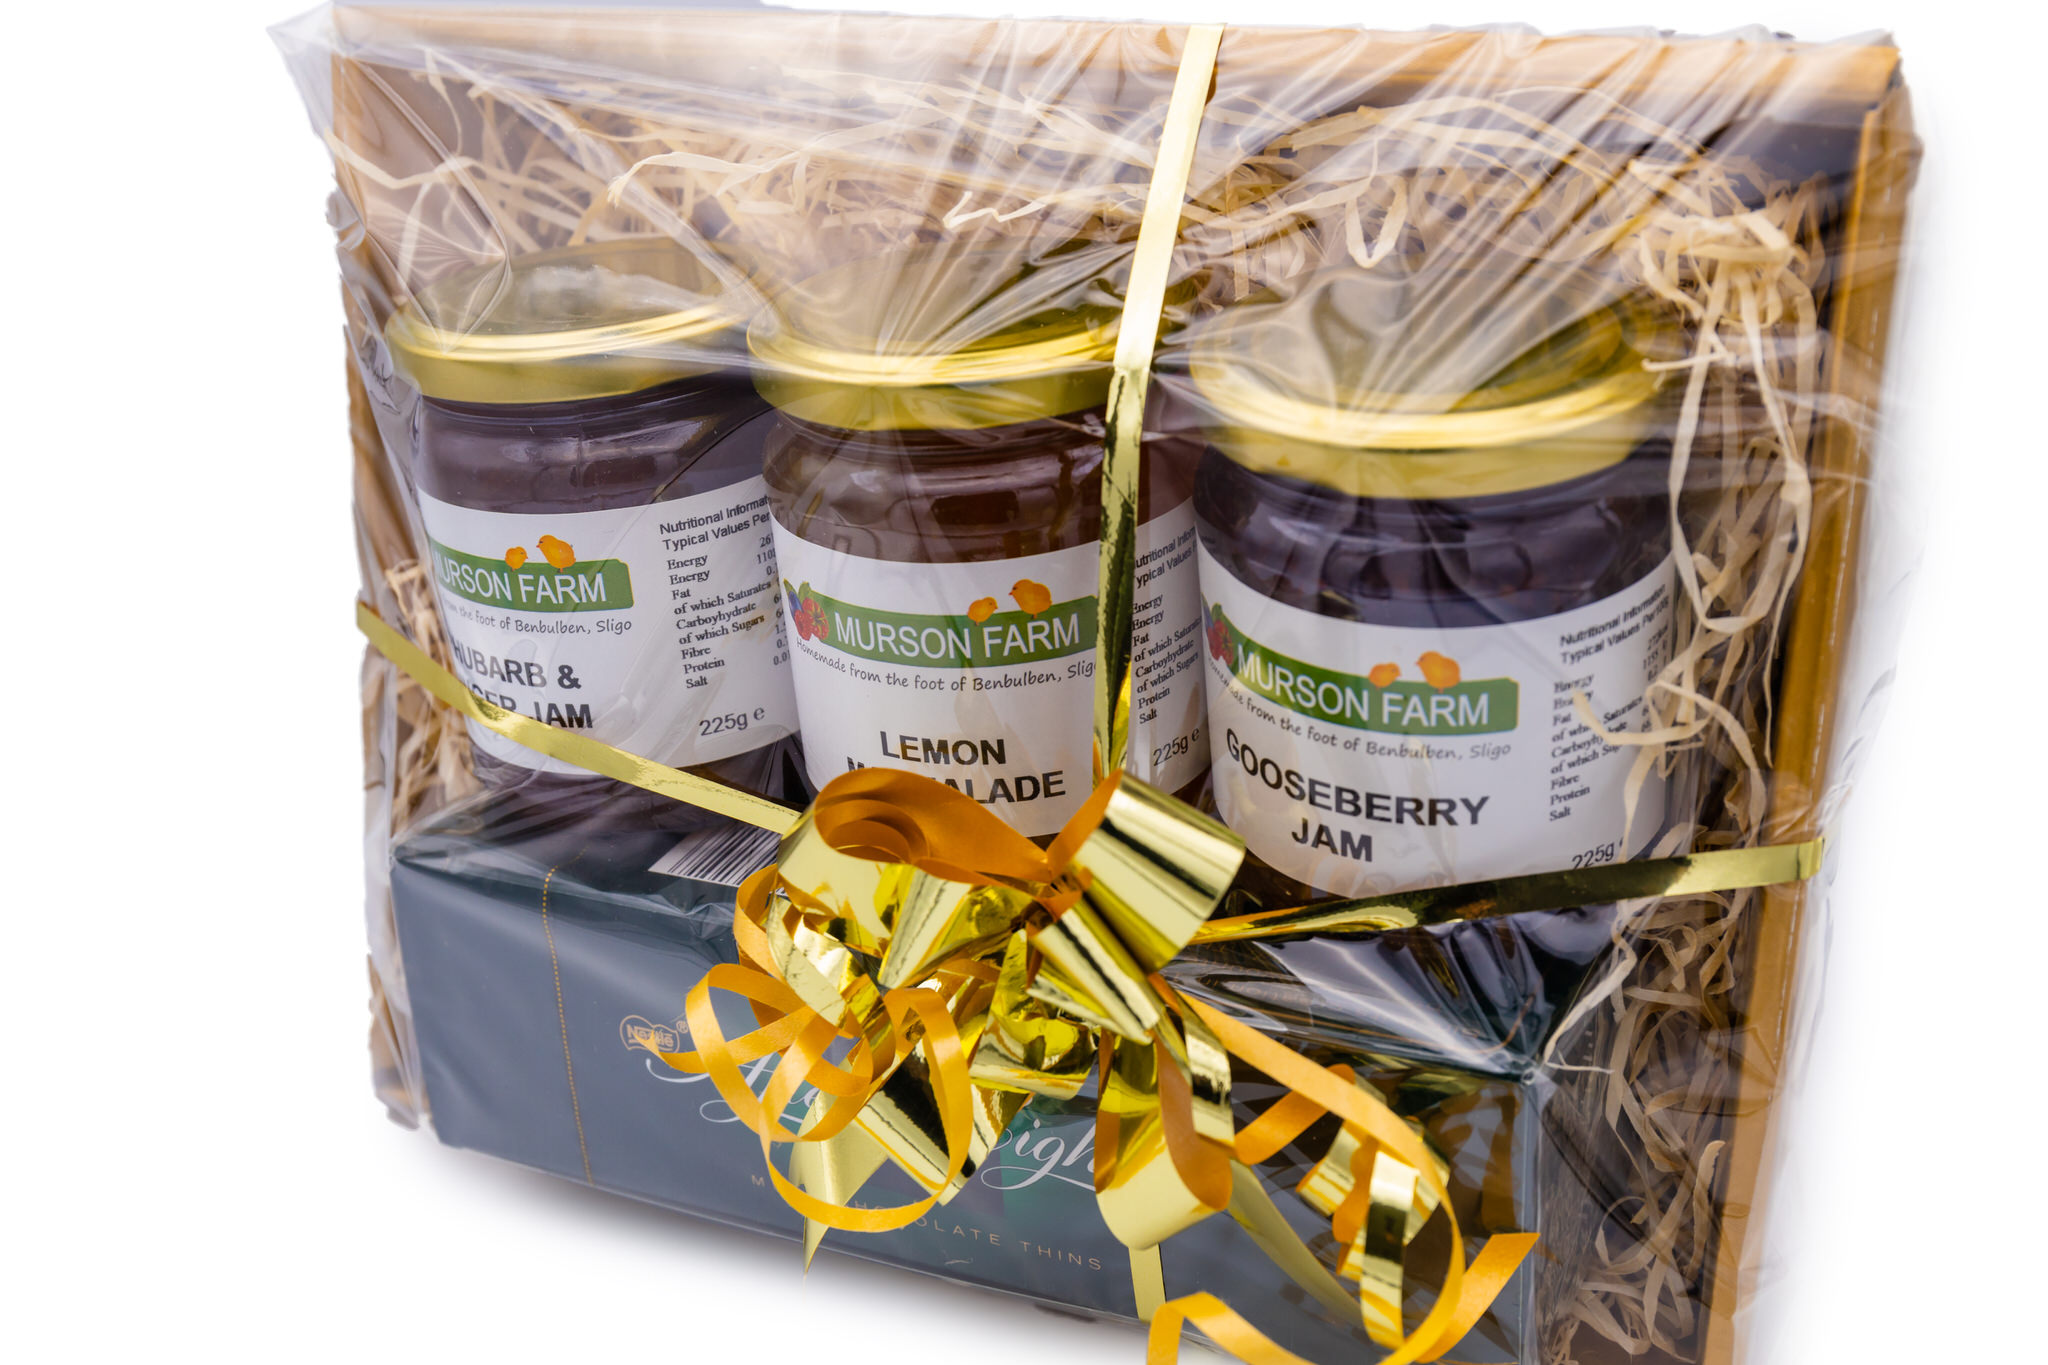 three jars of jam with box of After Eights in hamper